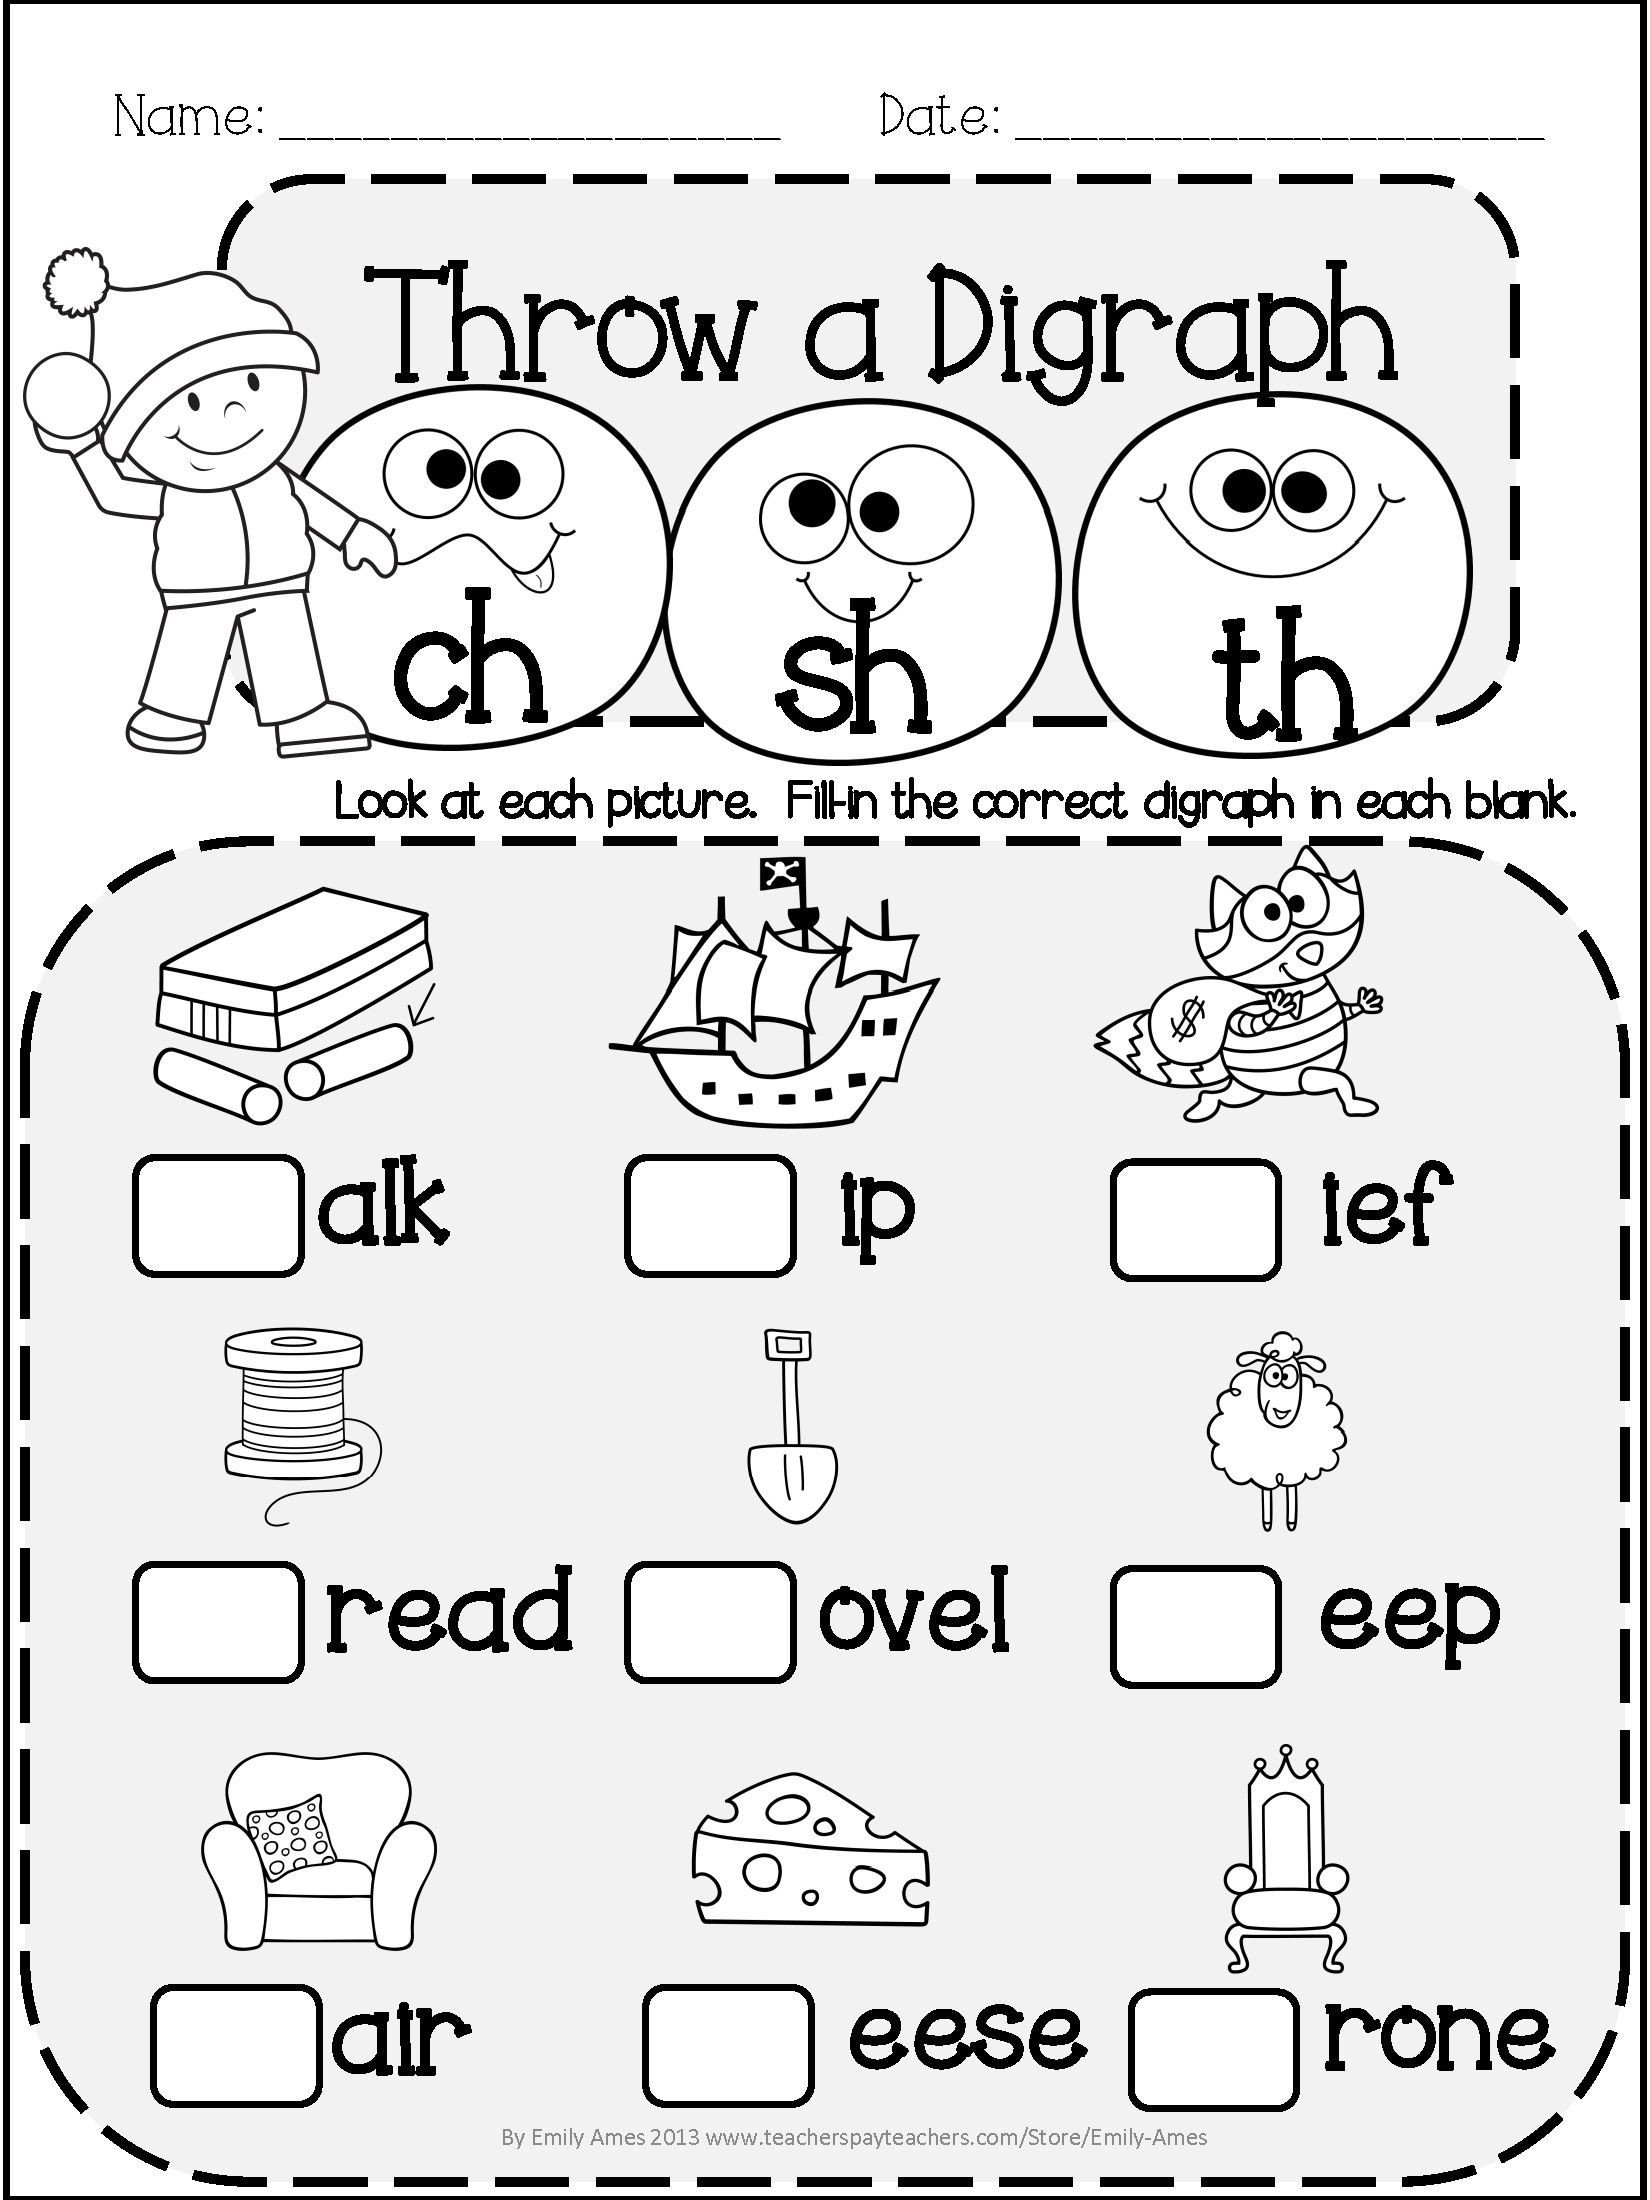 Kindergarten Number Recognition Worksheets Worksheets Circle Graph Paper Ch Th Worksheets